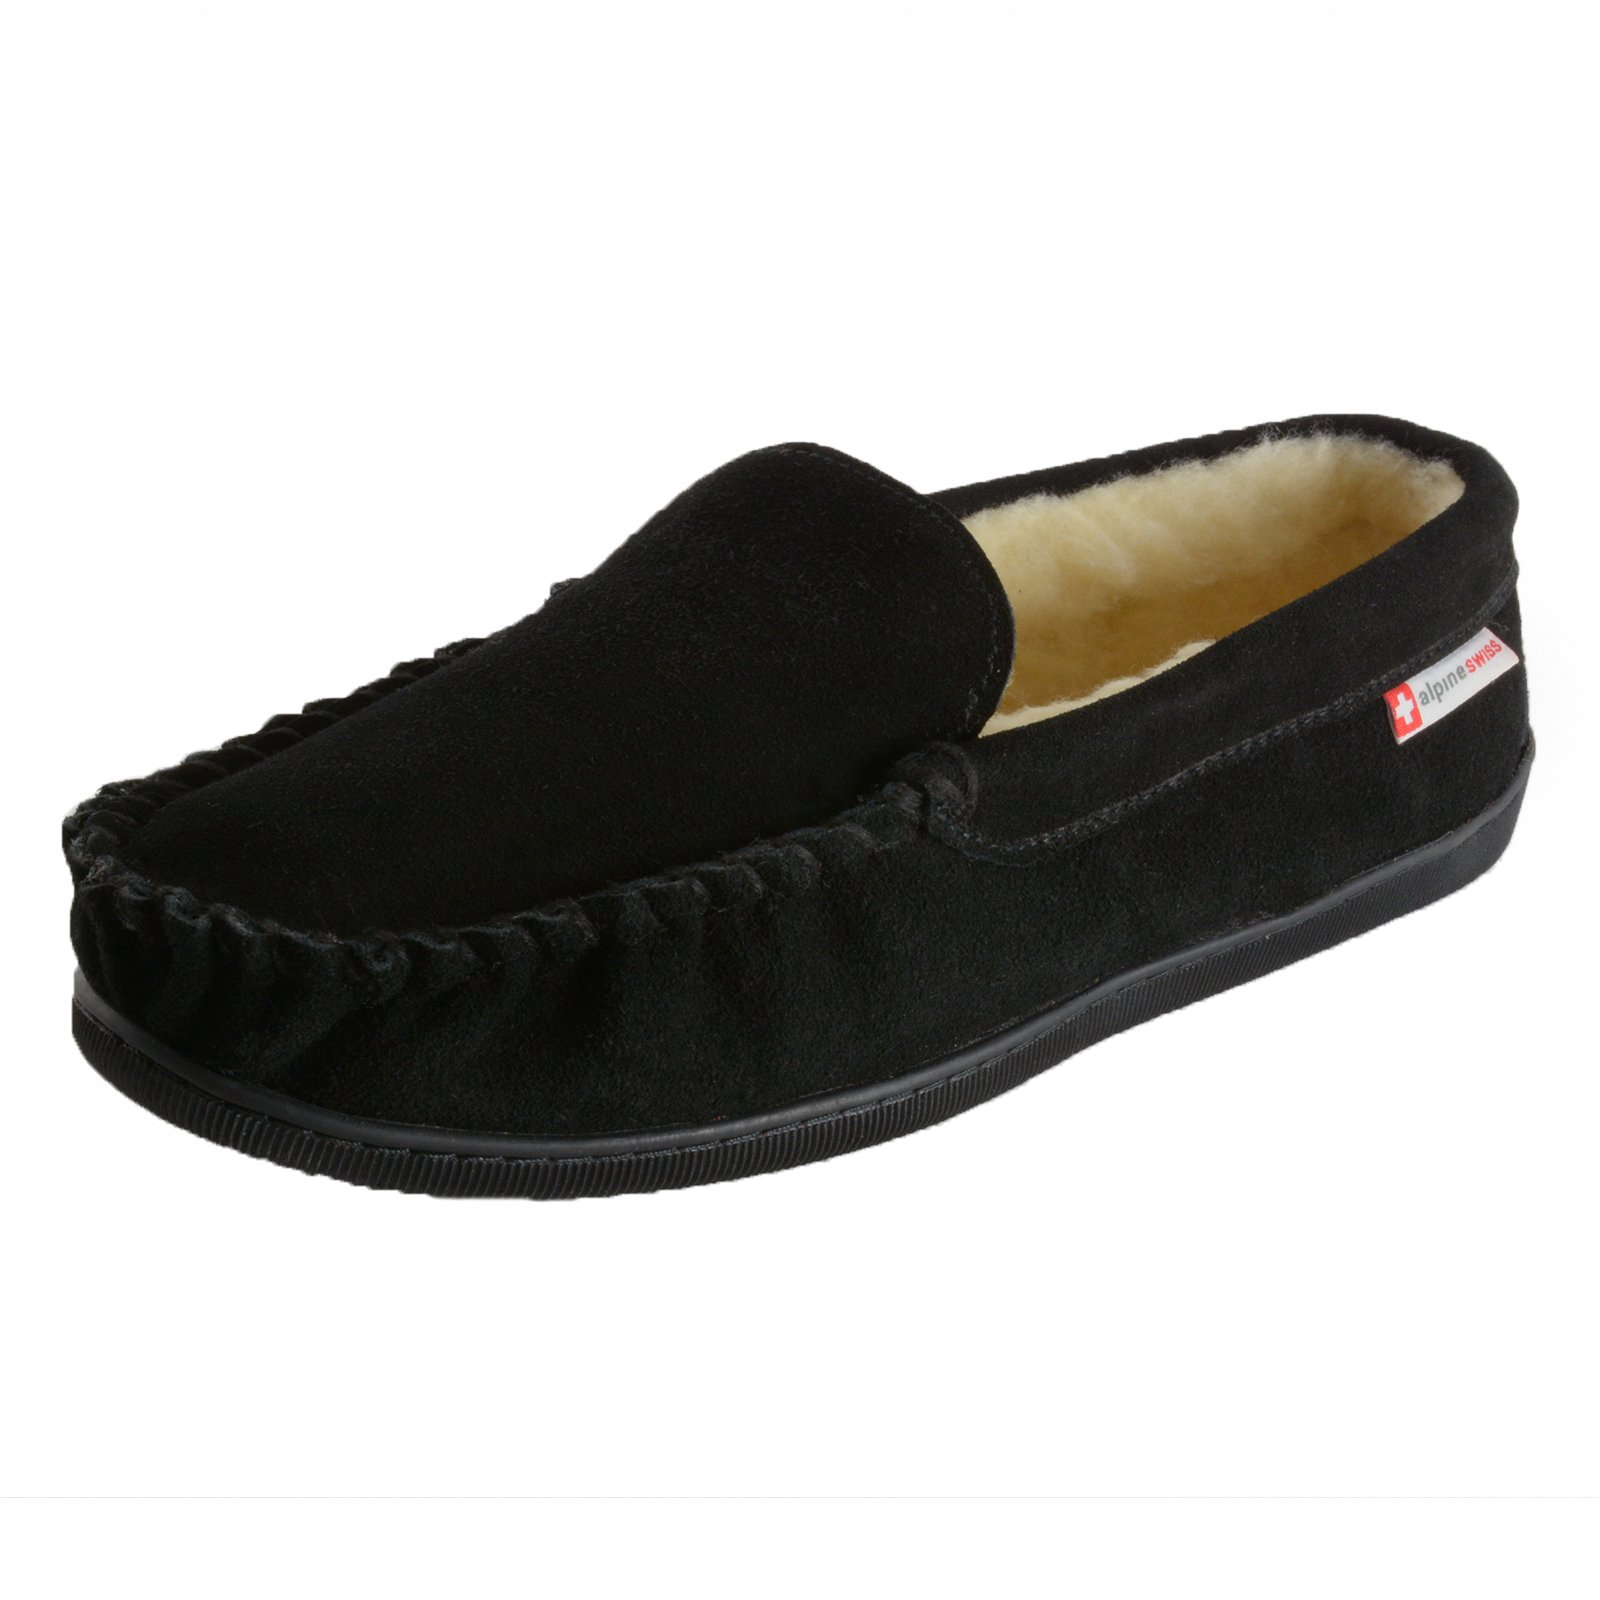 3c43f6642 Galleon - Alpine Swiss Sabine Womens Suede Shearling Slip On Moccasin  Slippers Black 5 M US